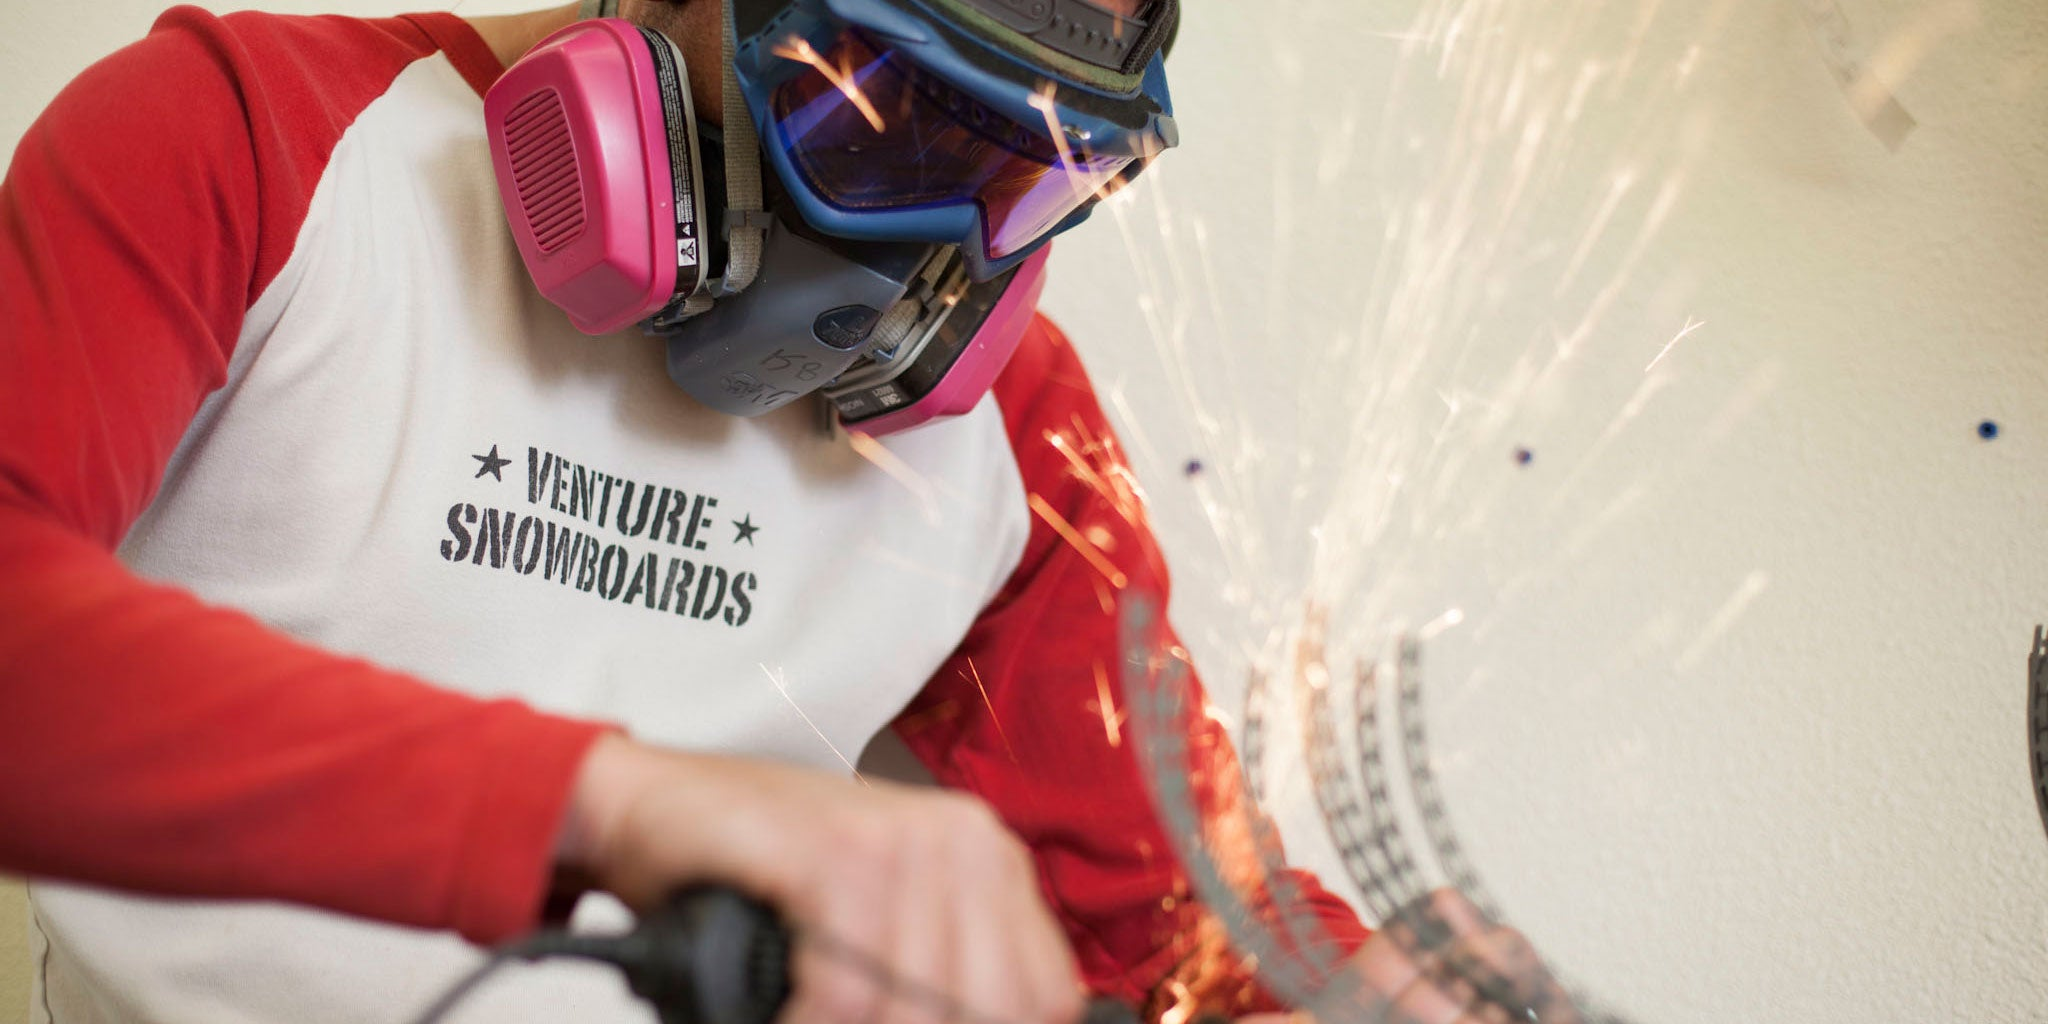 Hand crafting the finest snowboards on the planet at Venture Snowboards.